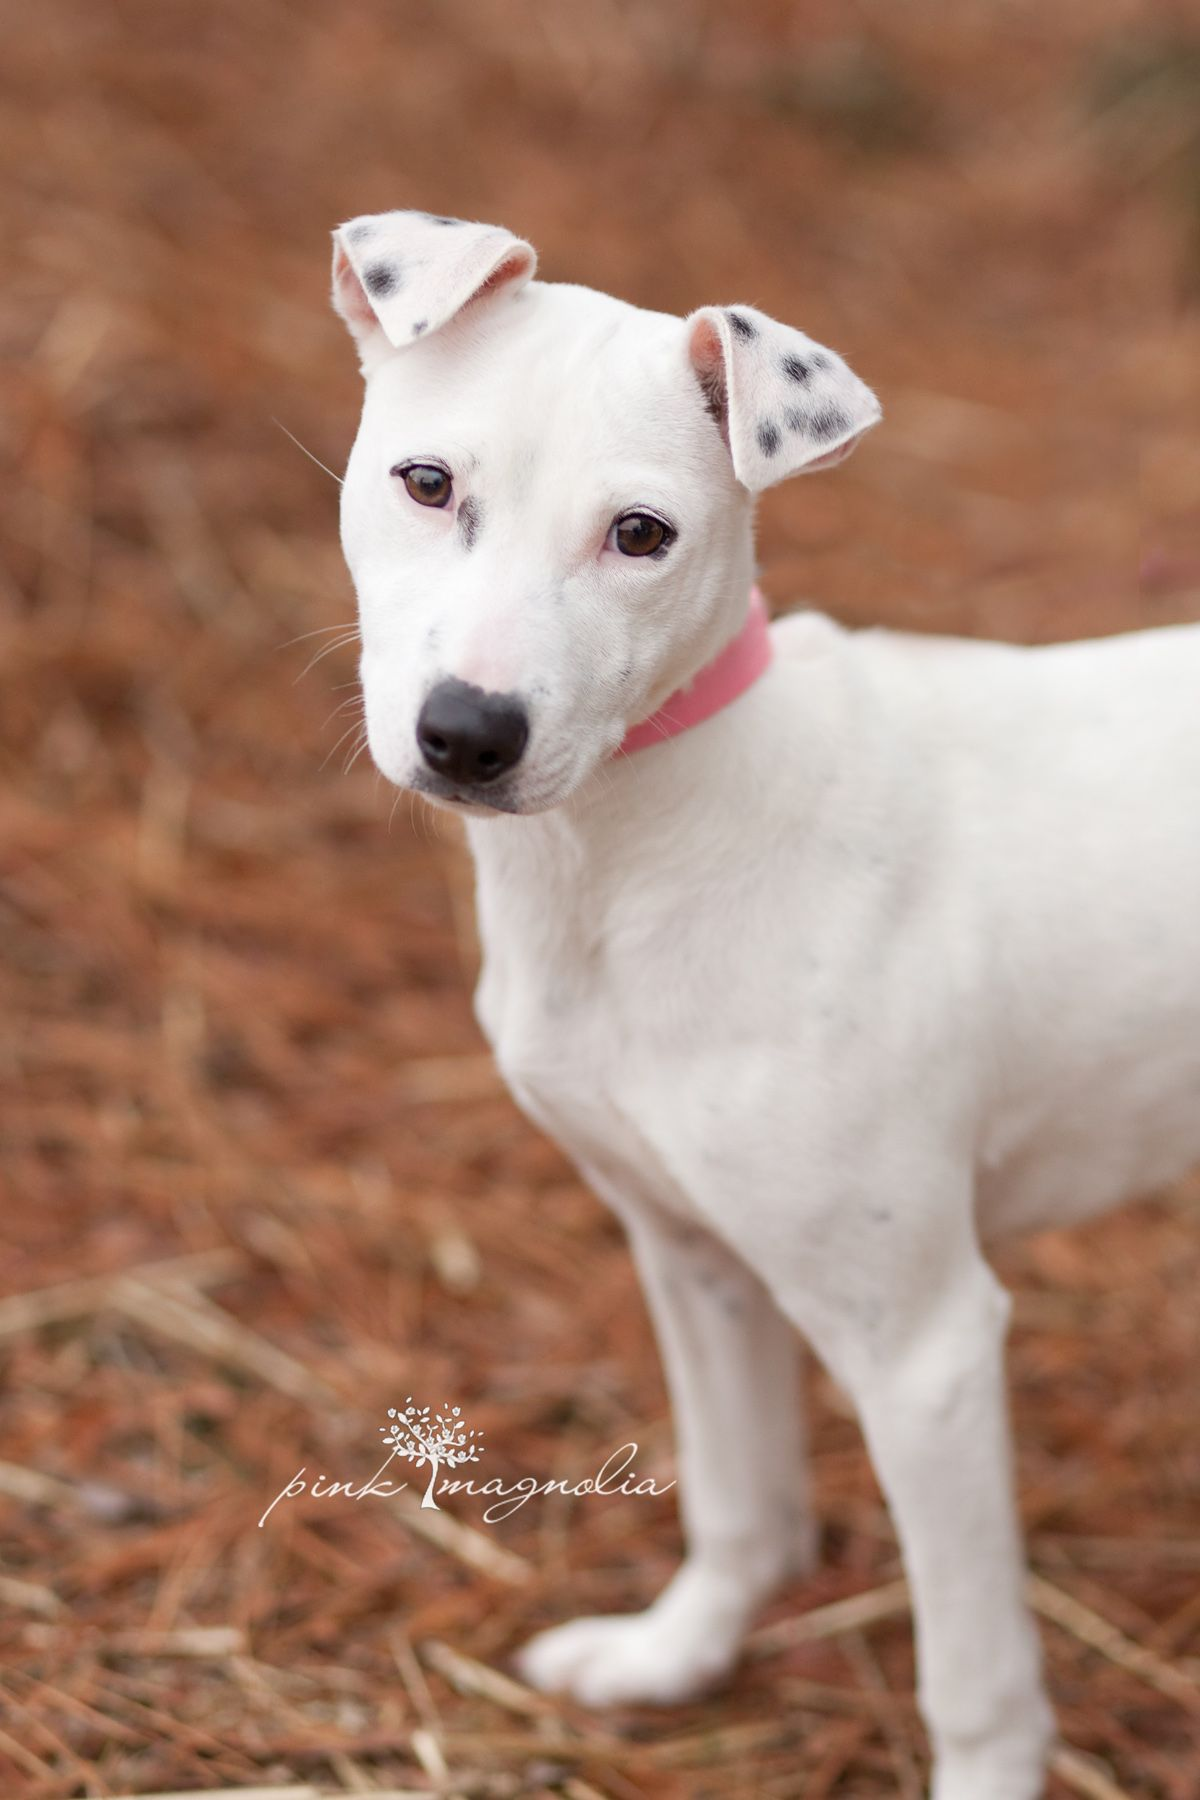 Elsa Is A Dalmatian Whippet Mix Available For Adoption Through The Fayette Humane Society In Fayette County Georgia Fil Puppy Breath Rescue Dogs Whippet Mix